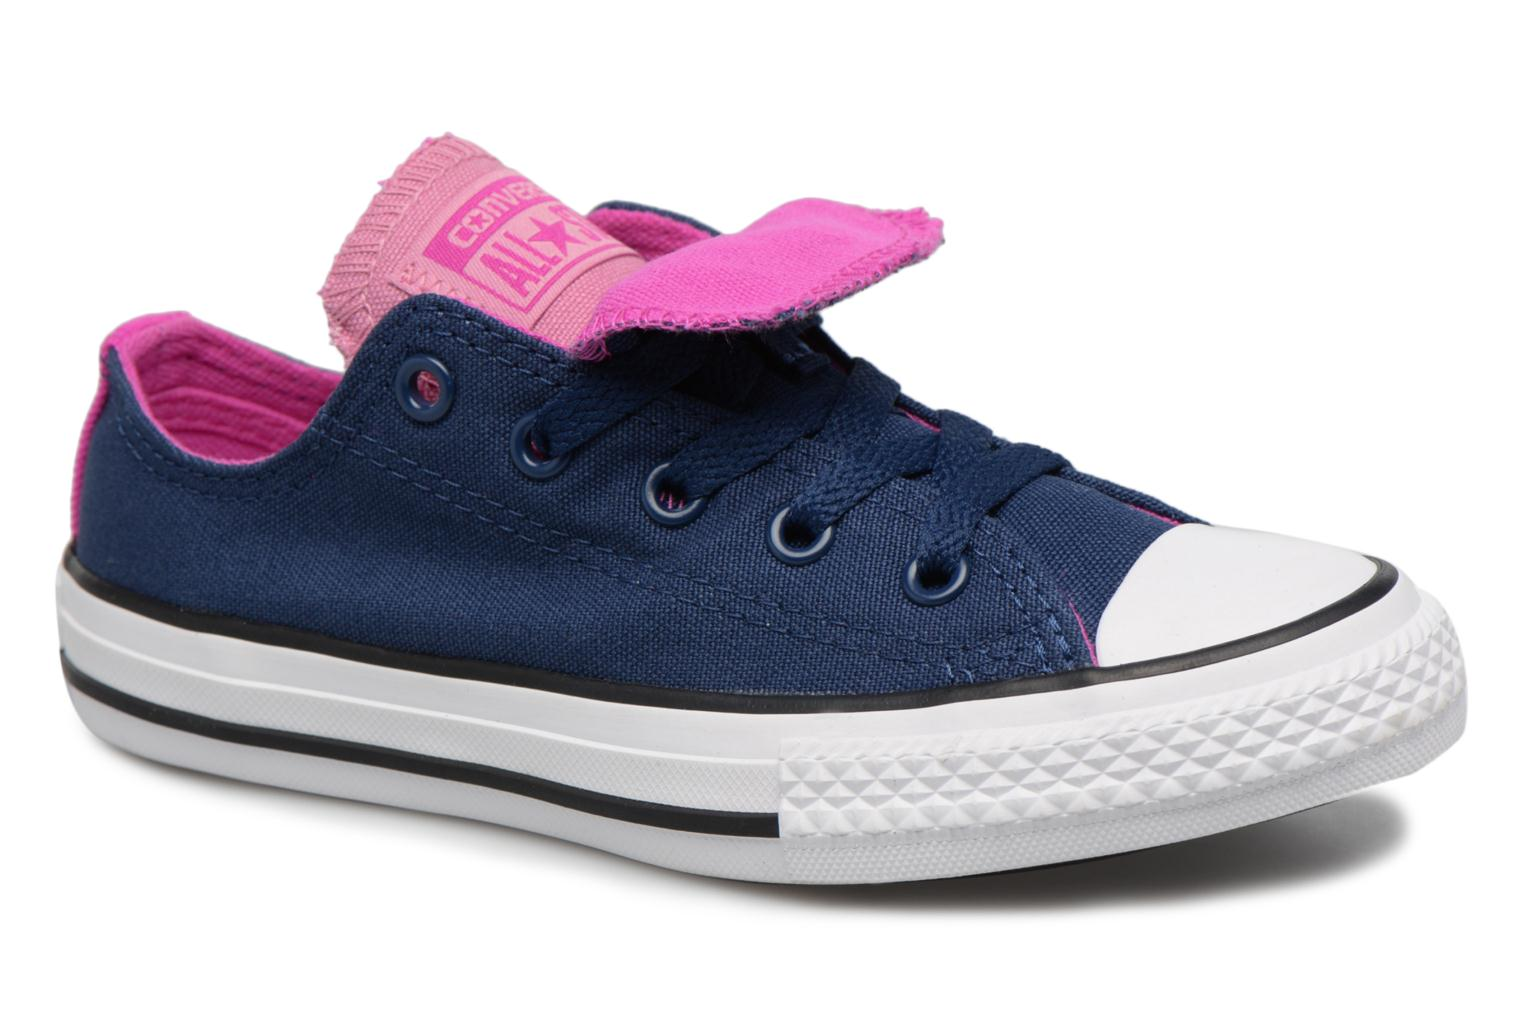 Converse - Kinder - Chuck Taylor All Star Double Tongue Ox Fundamentals Spring - Sneaker - blau ey3SaaB